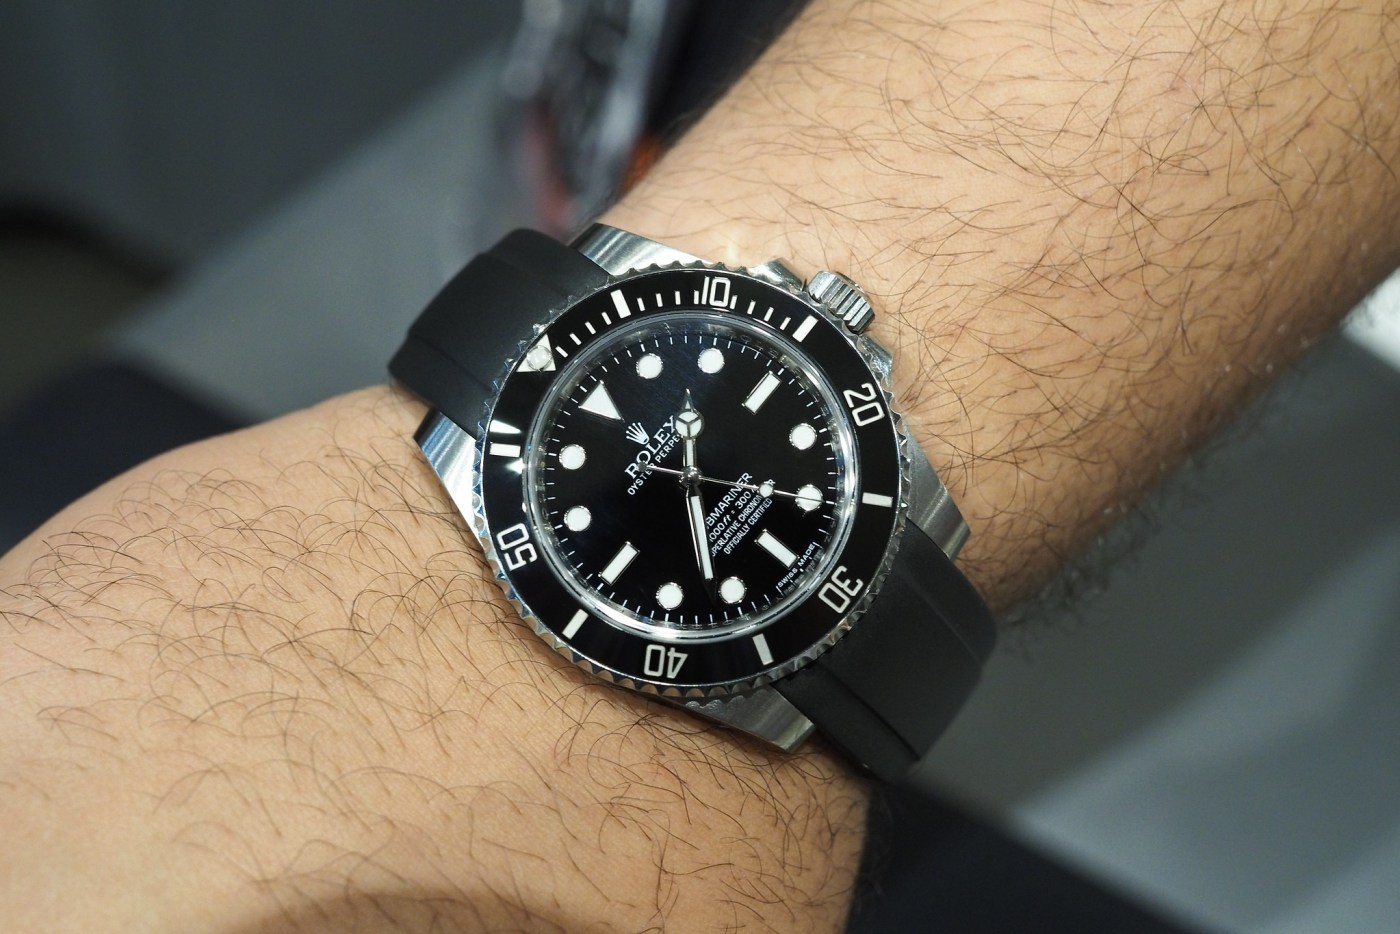 Everest Rubber Watch Strap on Rolex Submariner